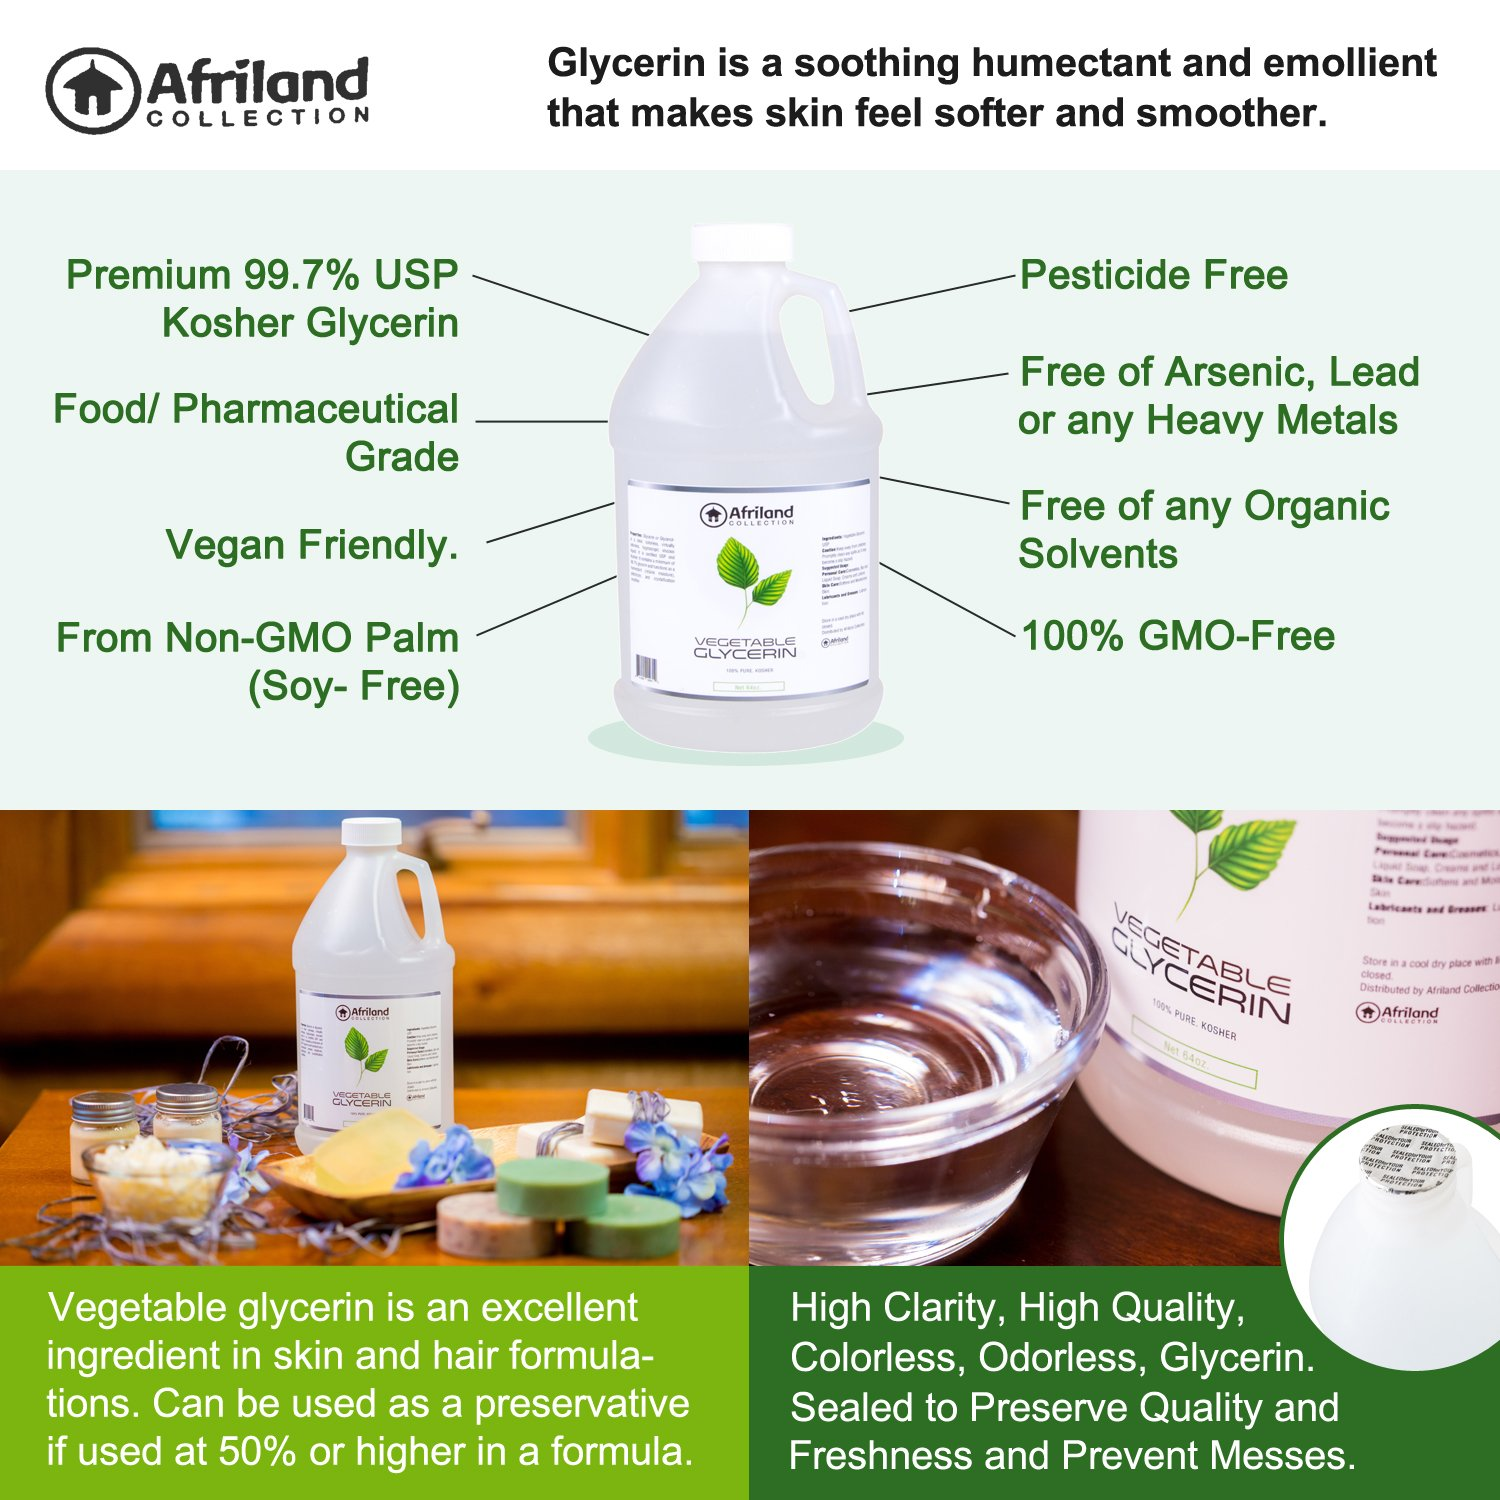 Vegetable Glycerin Kosher USP By Afriland Collection -Natural Food & Pharmaceutical Grade Liquid Glycerin , Refined Vegan Non-GMO Palm Oil Derived. For Skin Care/DIY Projects- 64oz (Half Gallon).